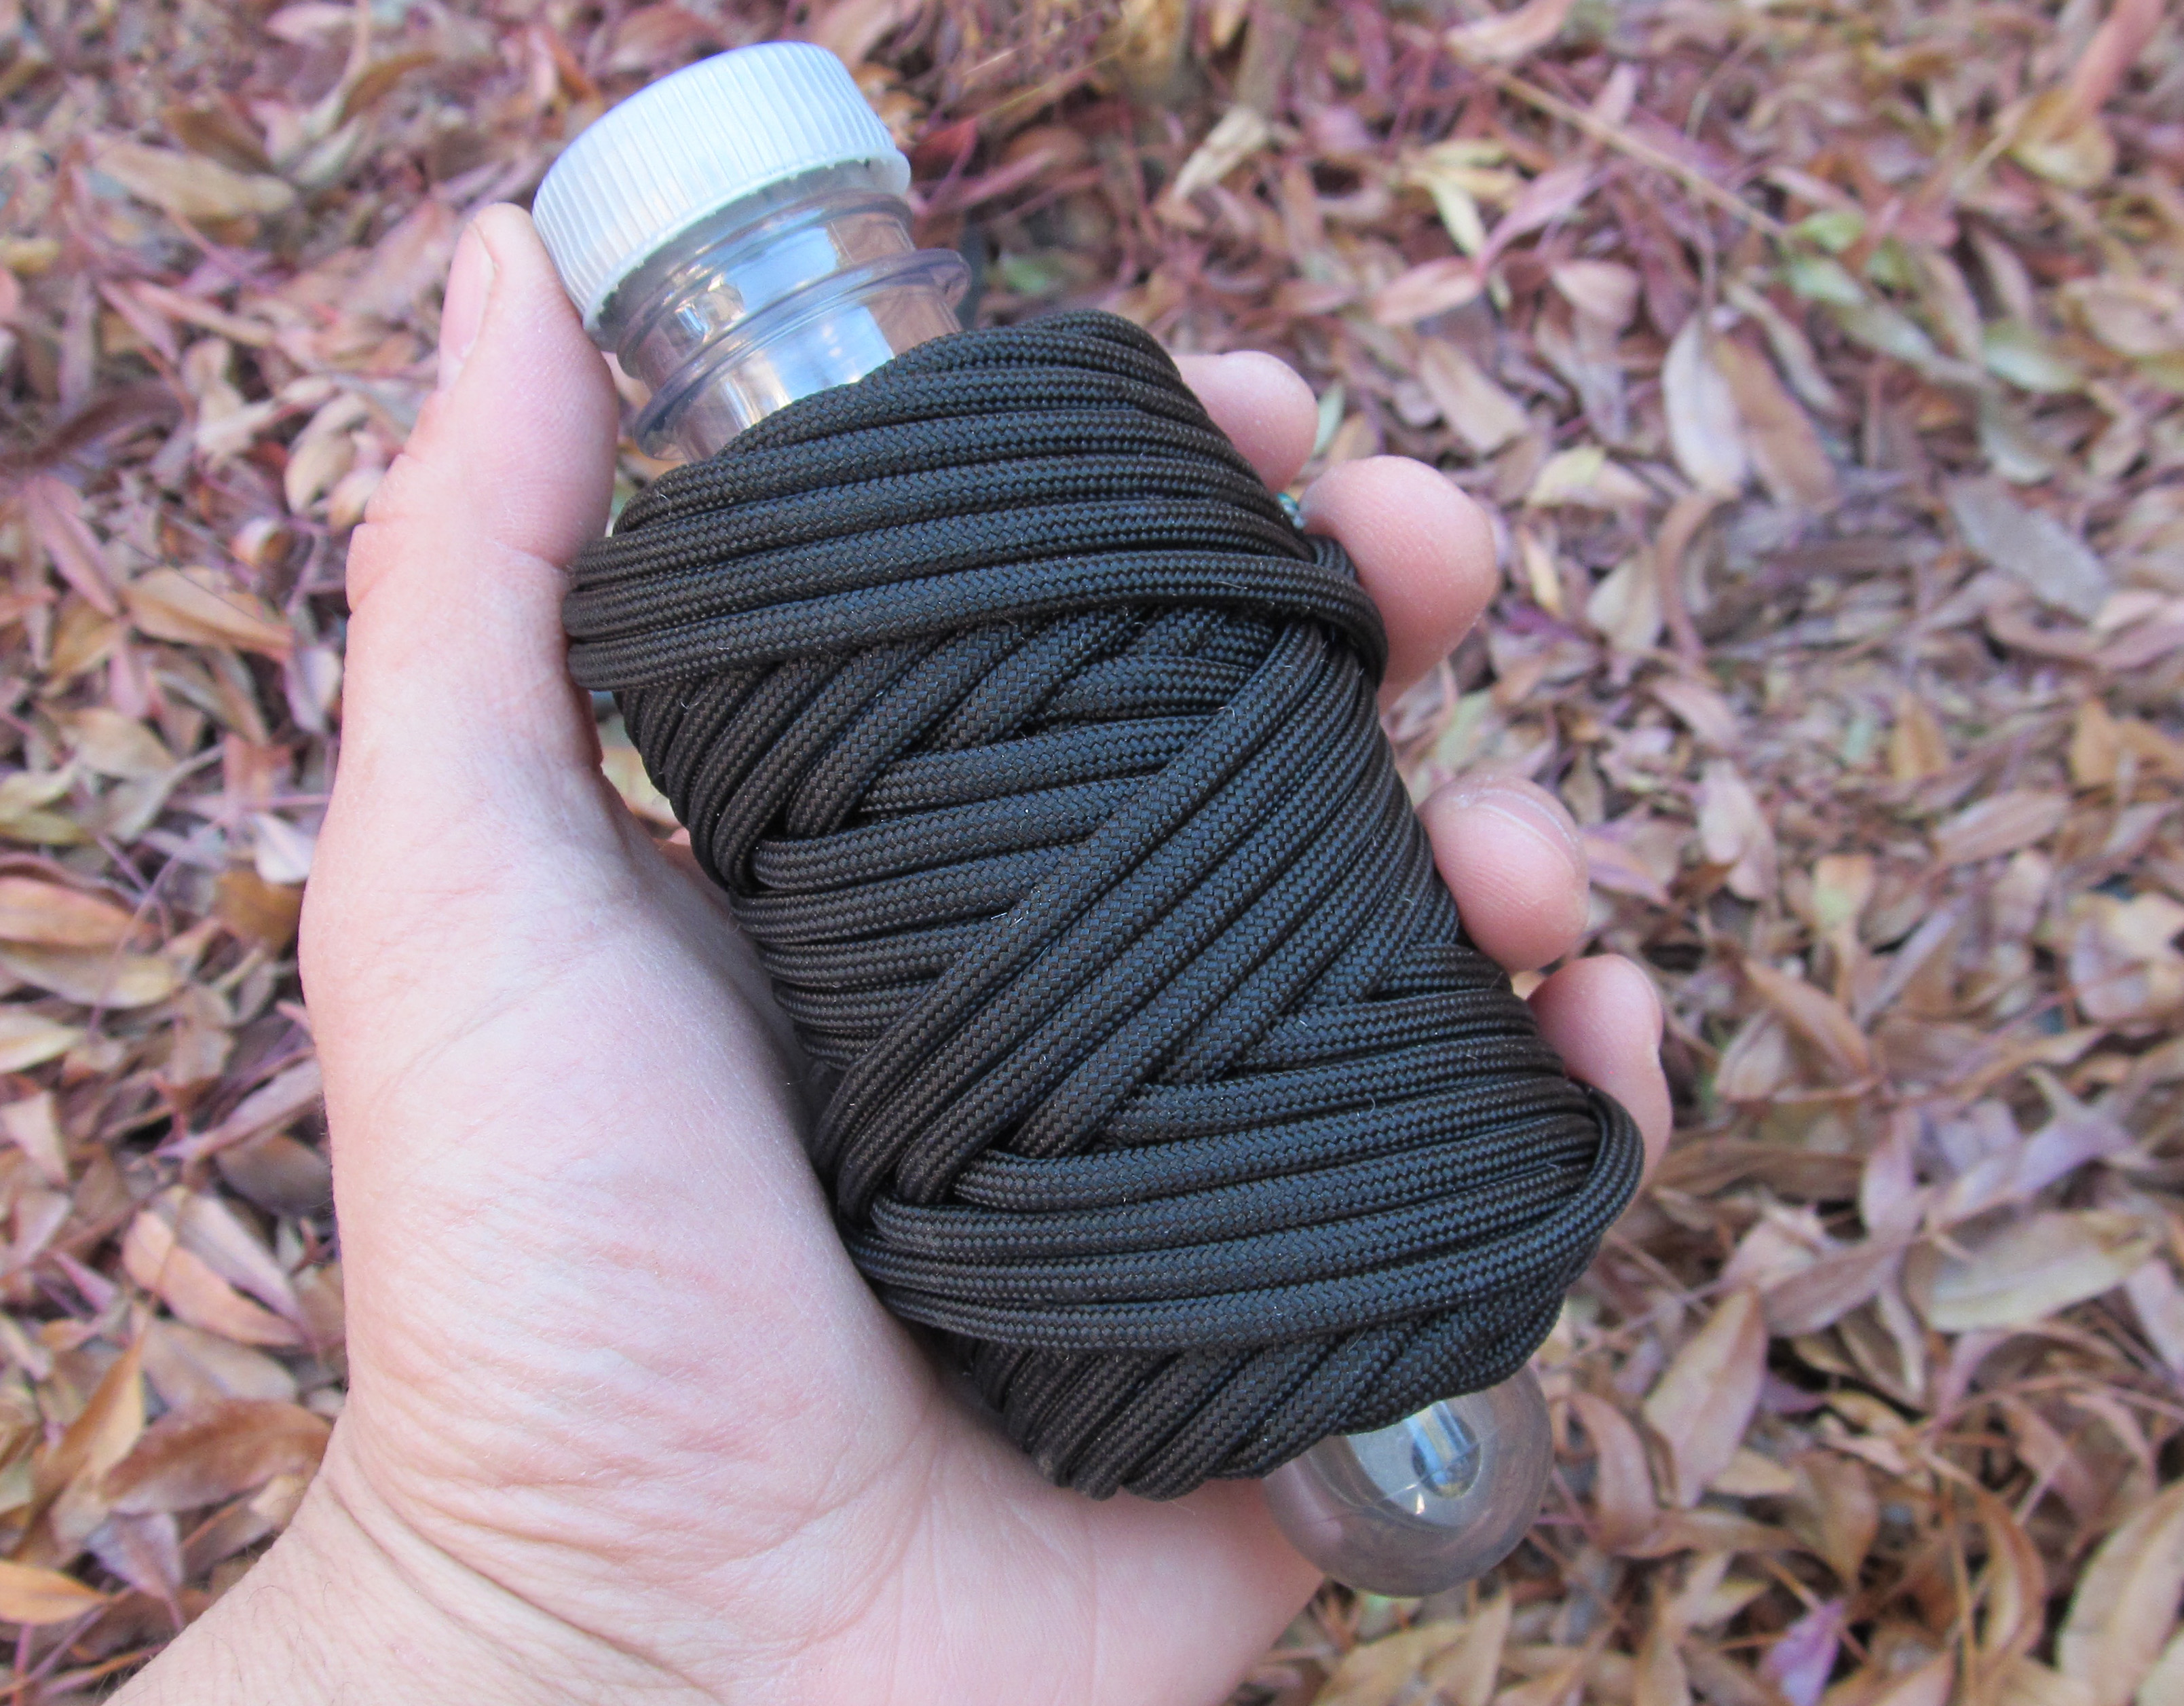 Narrated Paracord Spooling